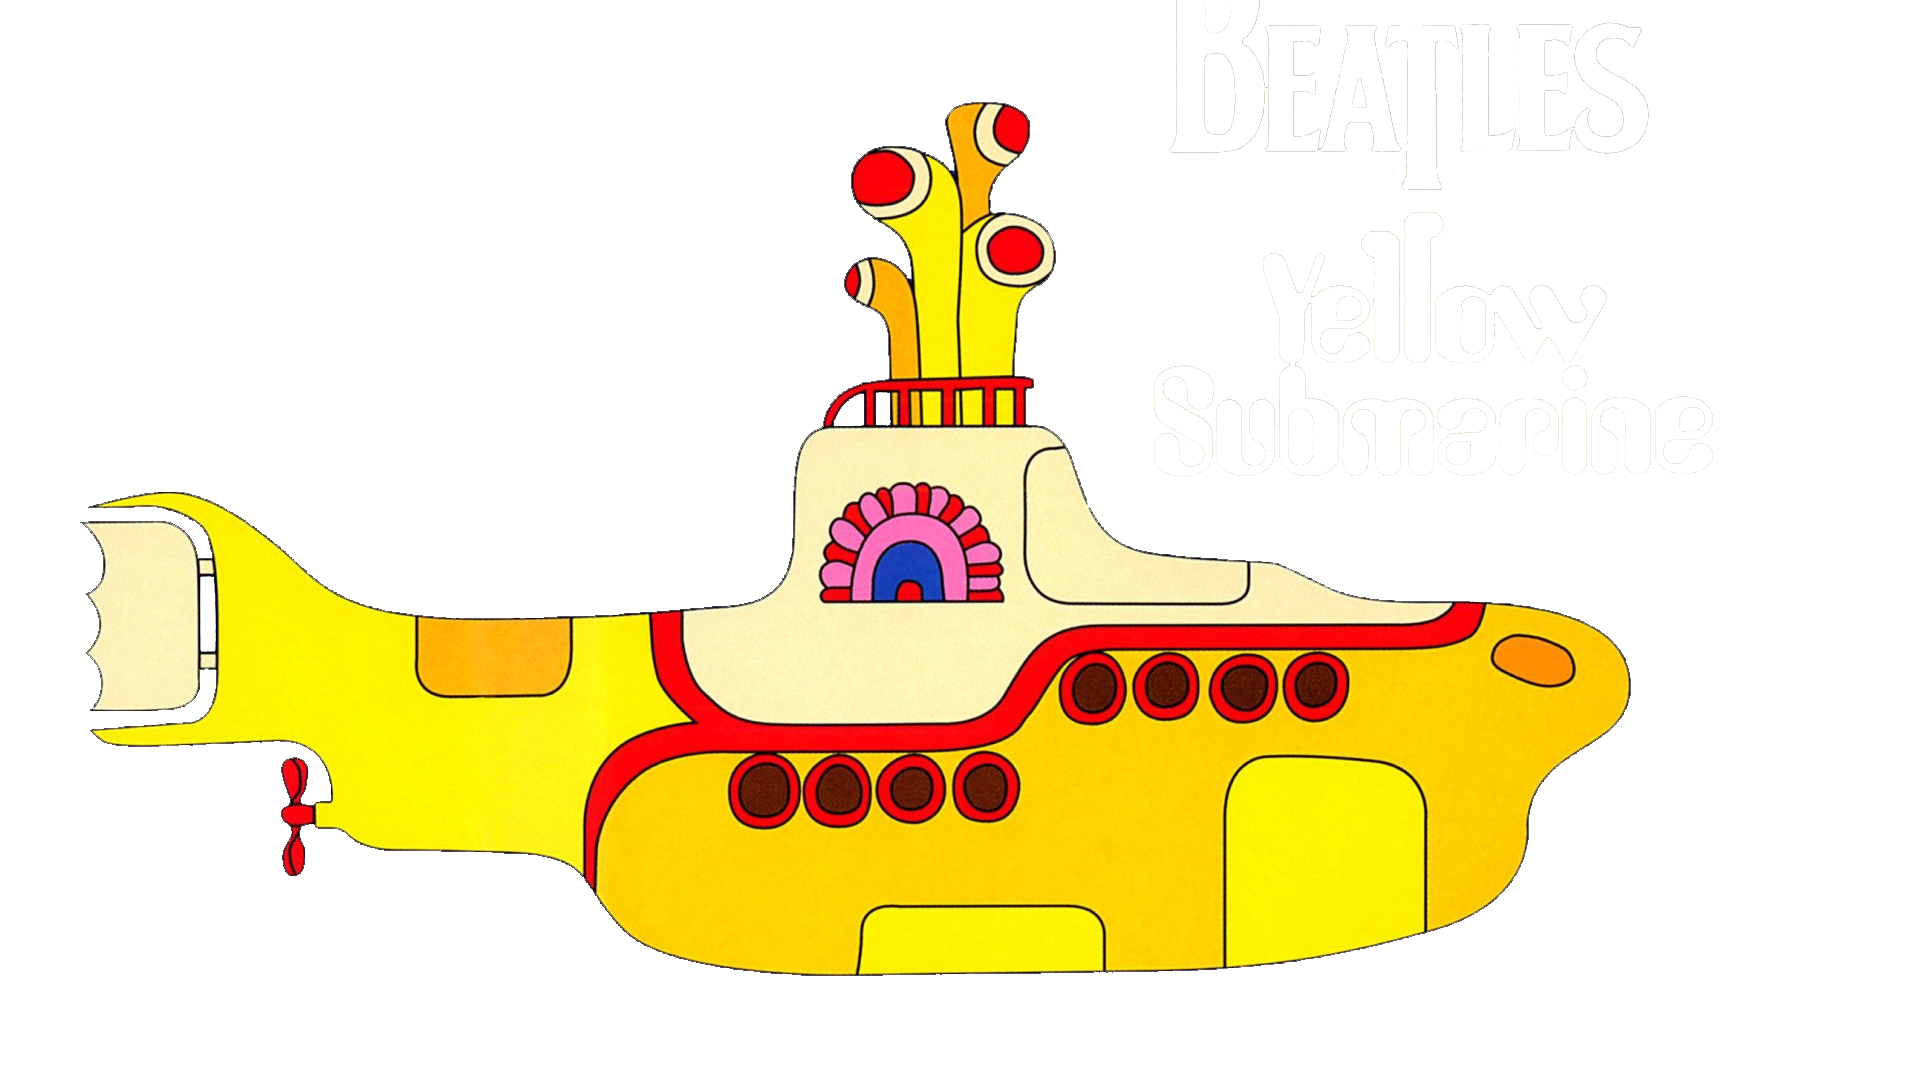 Png hd mart. Submarine clipart transparent background